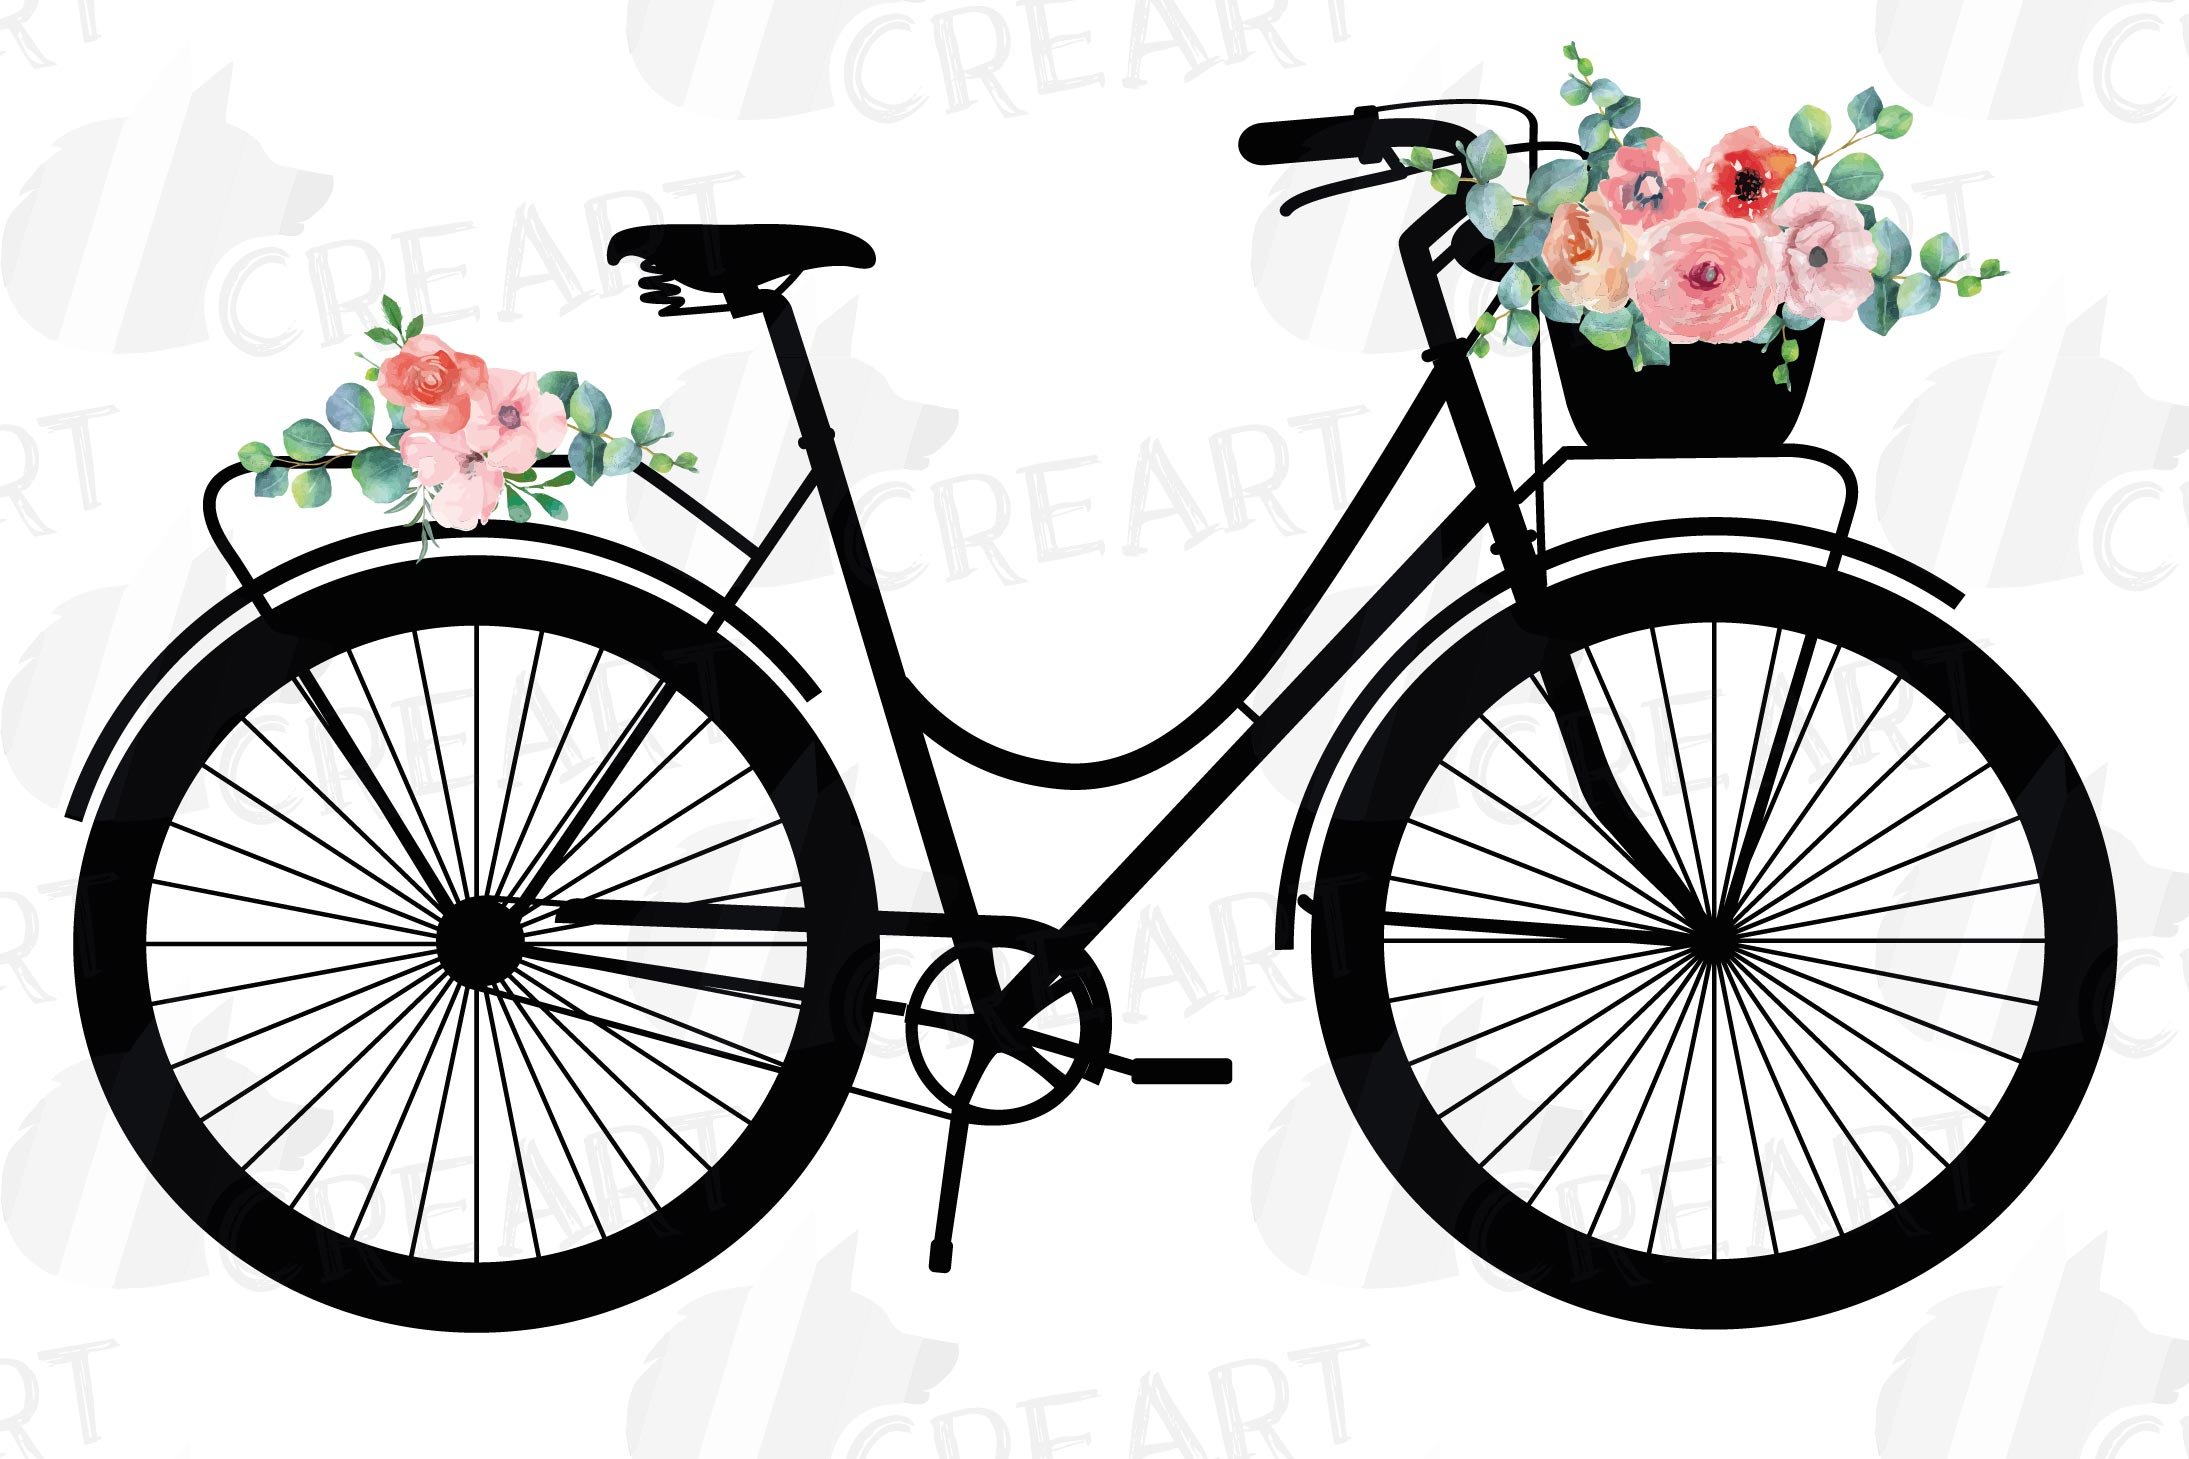 Floral bicycles clip art pack, blush floral and eucalyptus example image 4